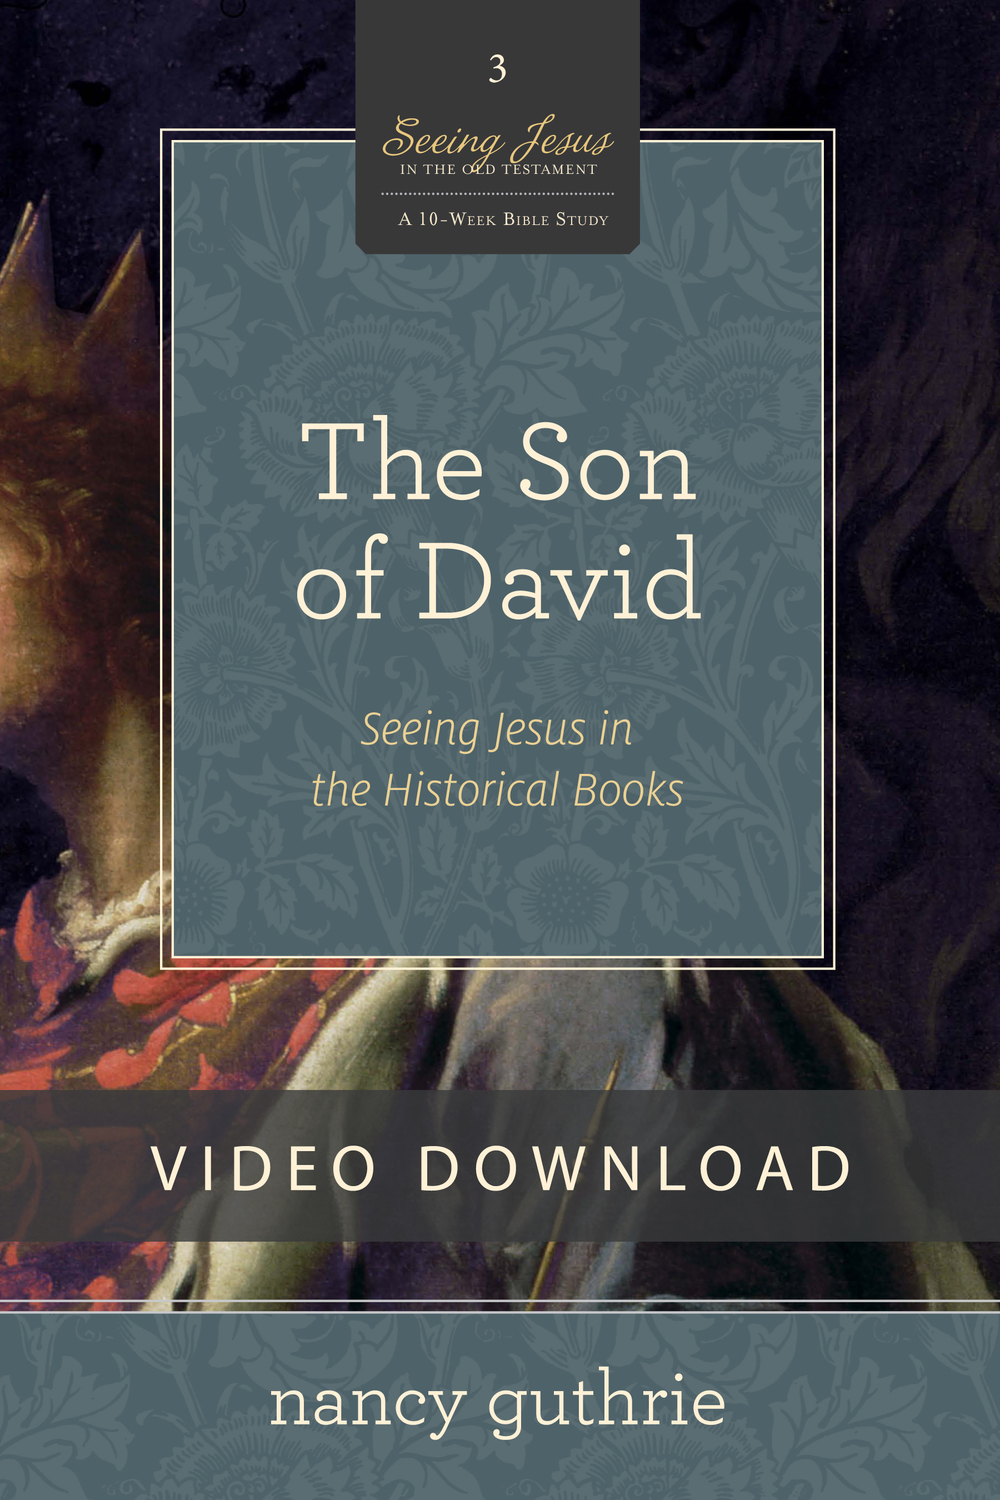 The Son of David Video Session 1 Download